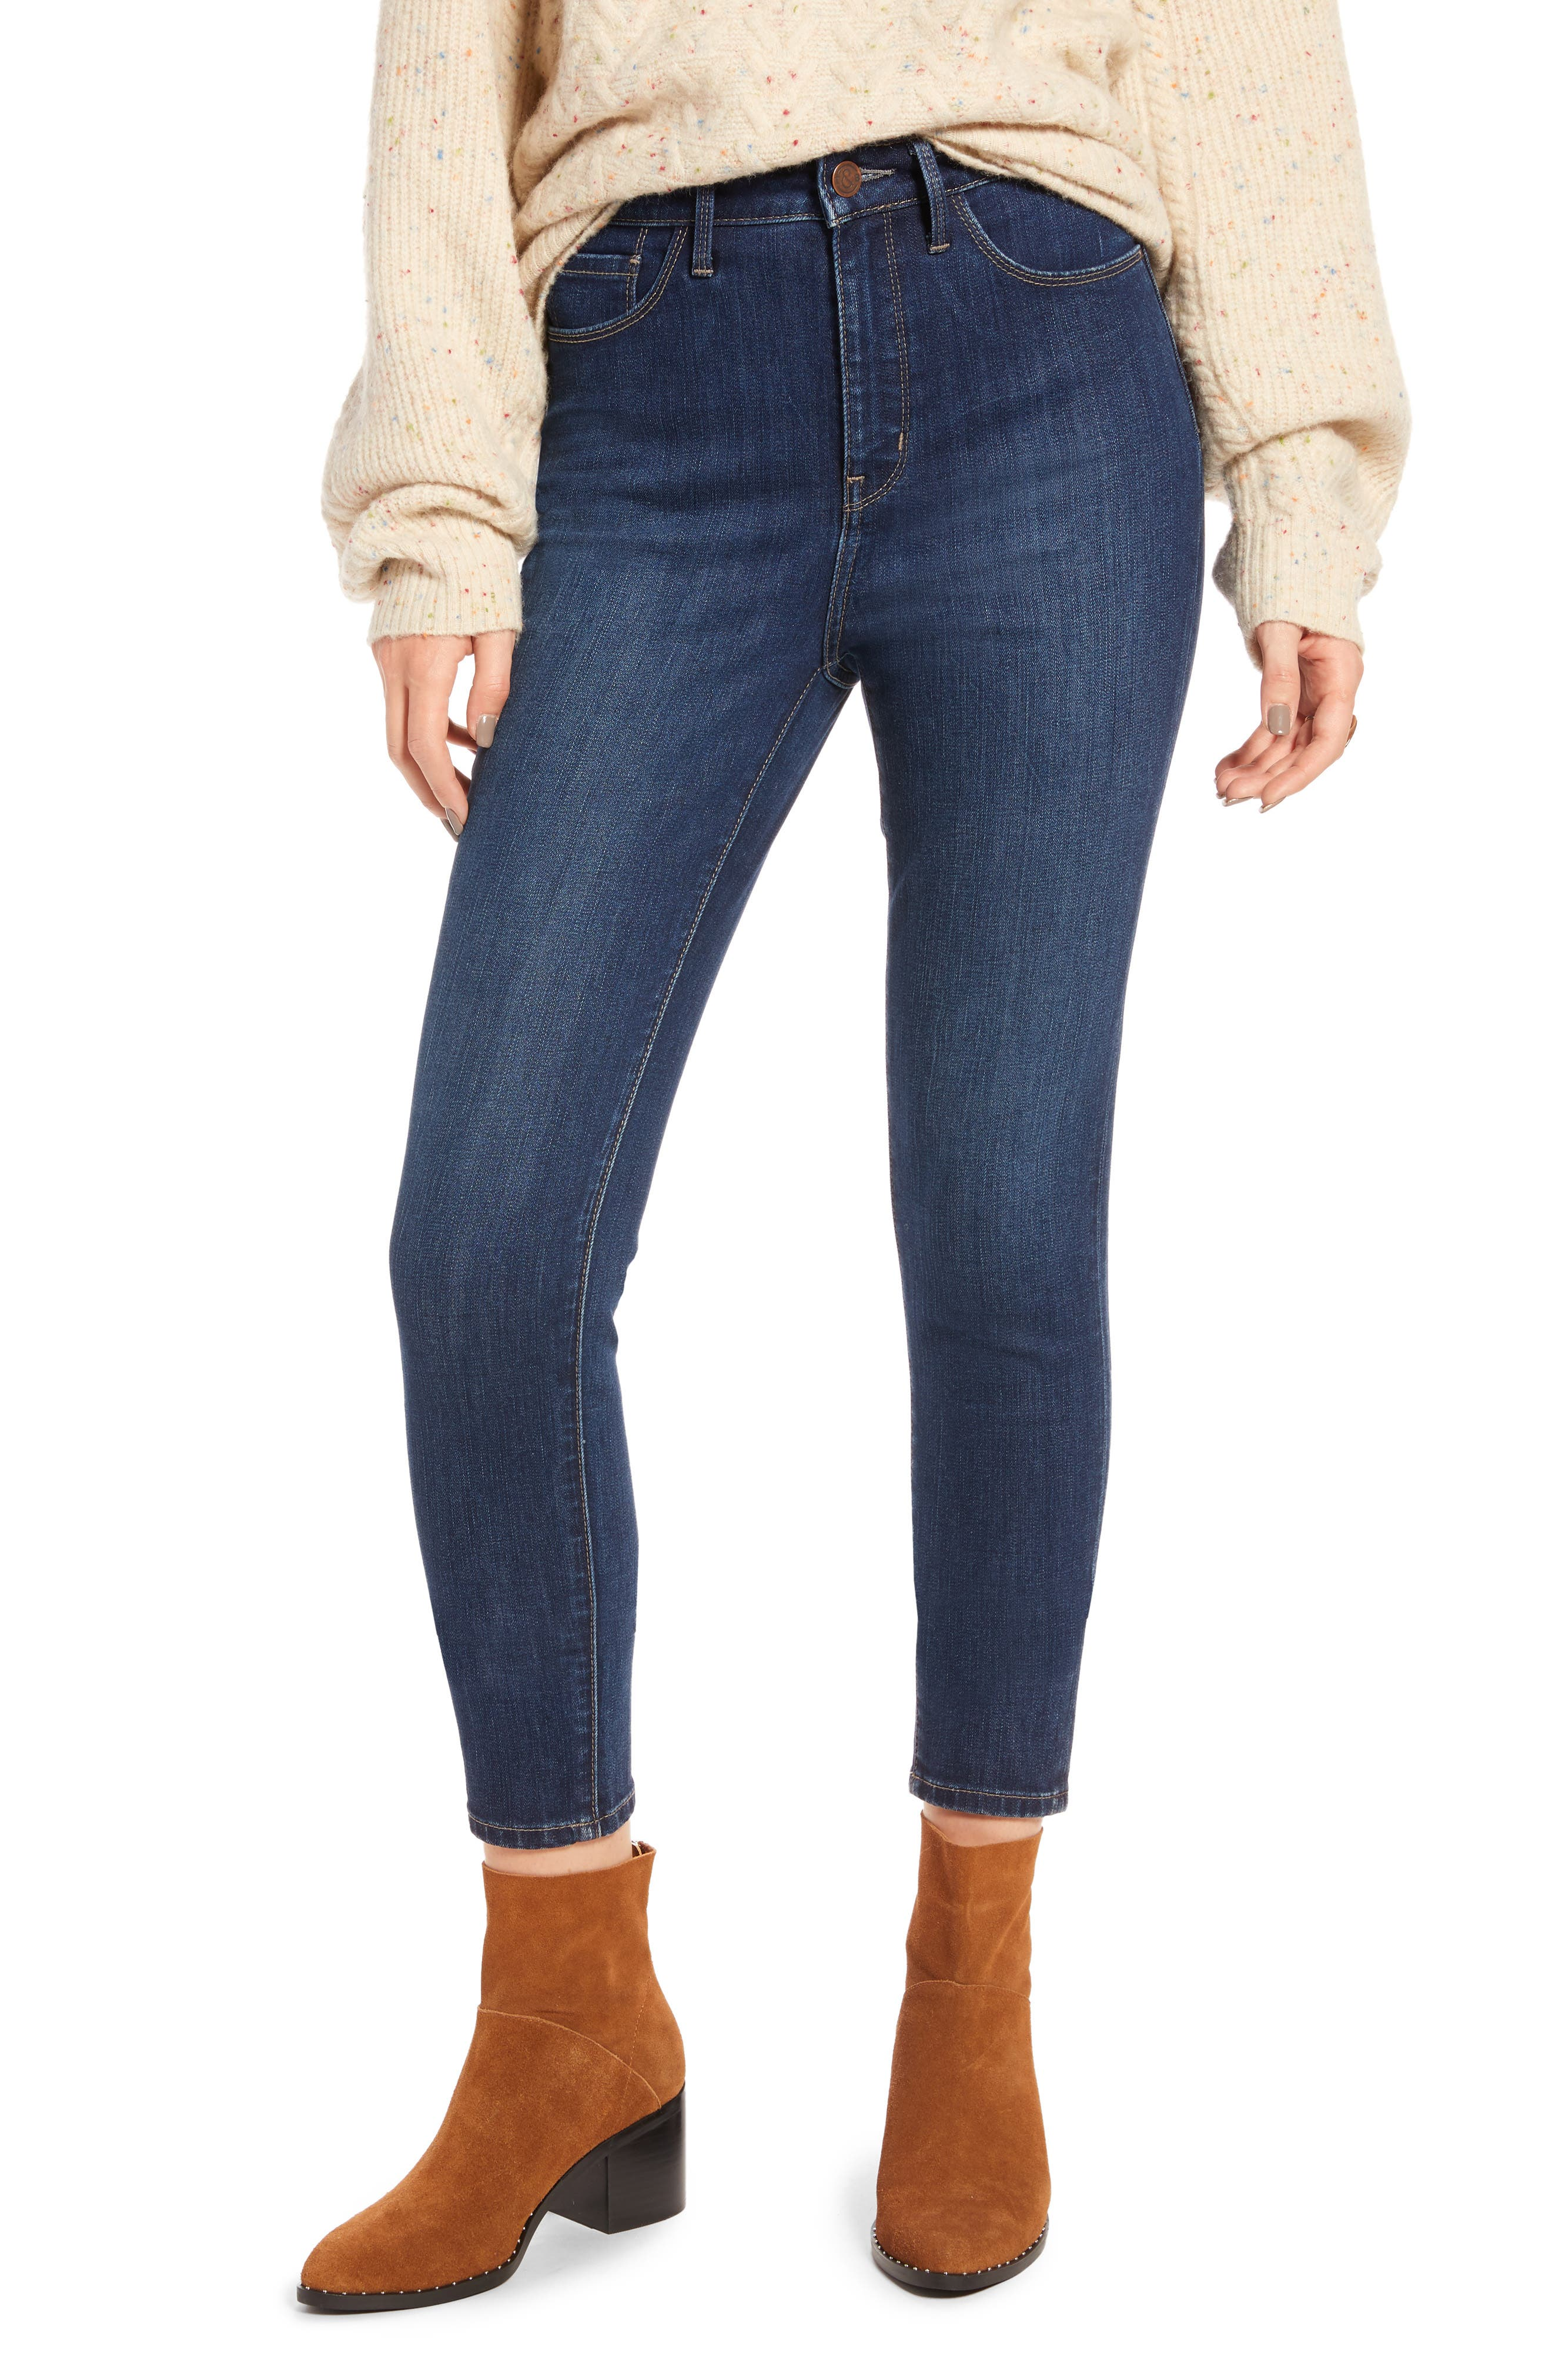 Charity High Waist Ankle Skinny Jeans,                             Main thumbnail 1, color,                             401